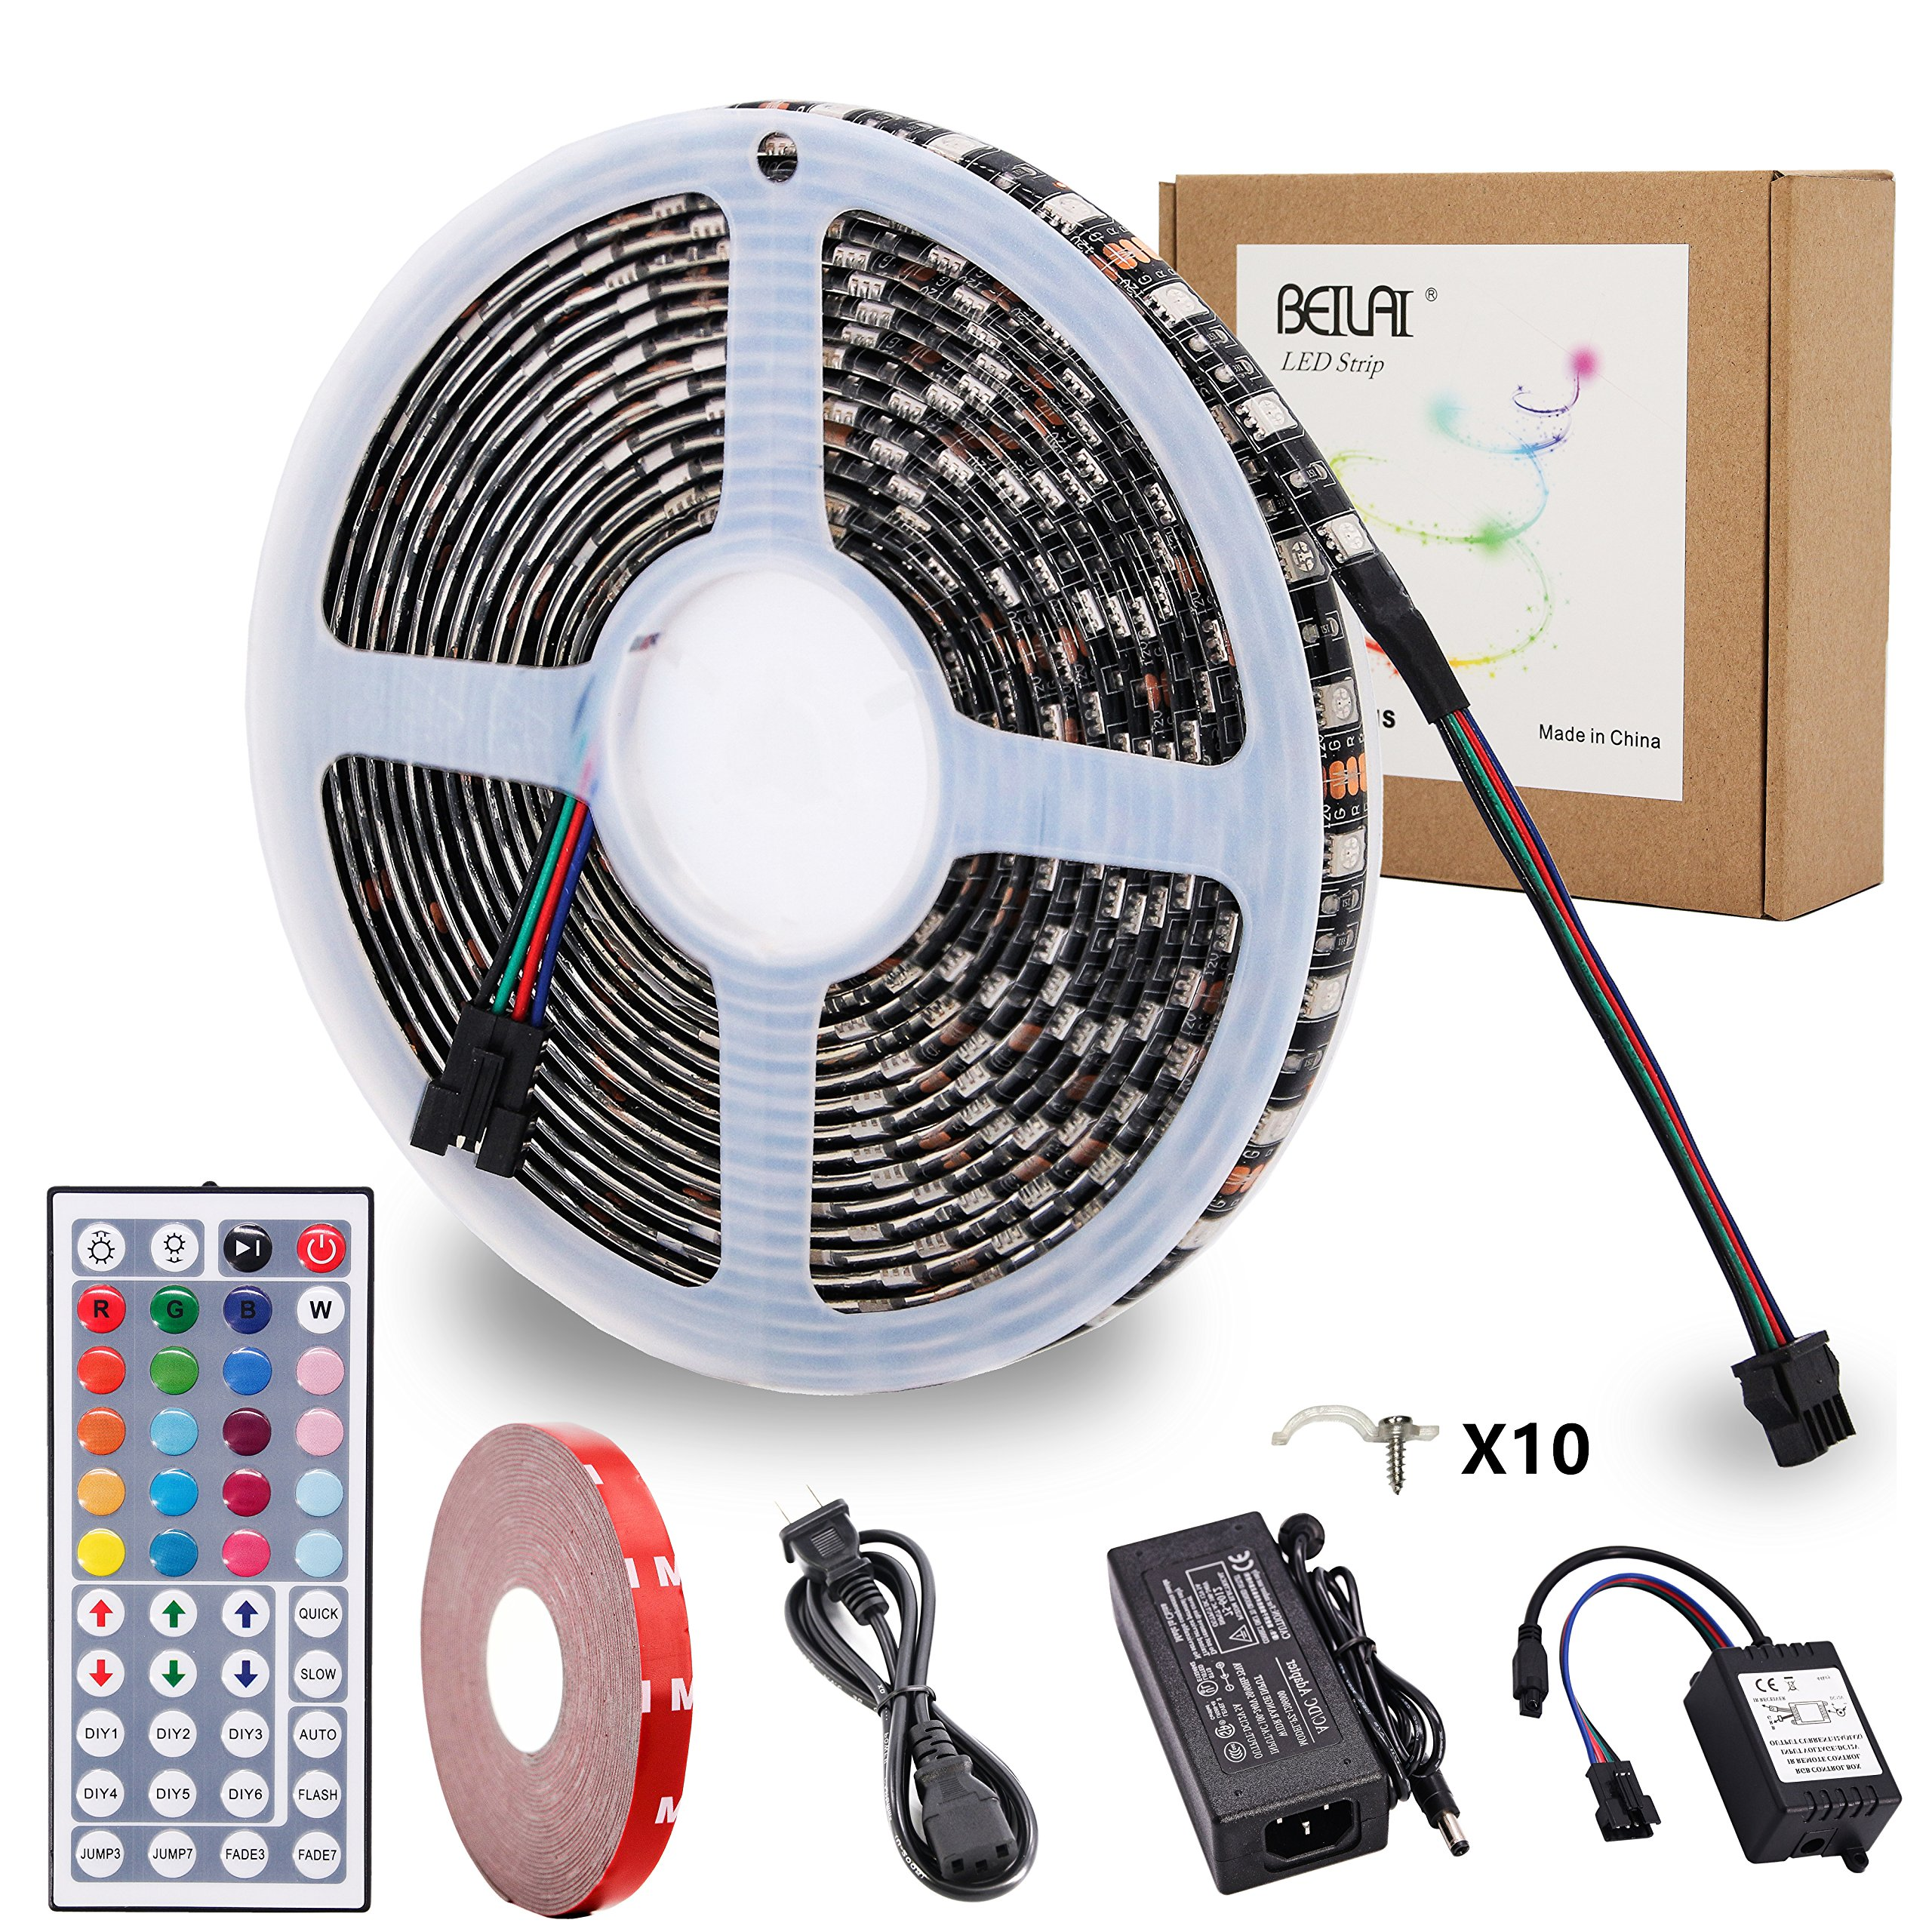 RGB LED Strip Lights Kit,BEILAI RGB LED Light Strip Waterproof SMD 5050 DC 12V Flexible Neon Tape 16.4 Ft (5M) 300leds with 44key Controller for Christmas Kitchen Party Indoor and Outdoor decoration